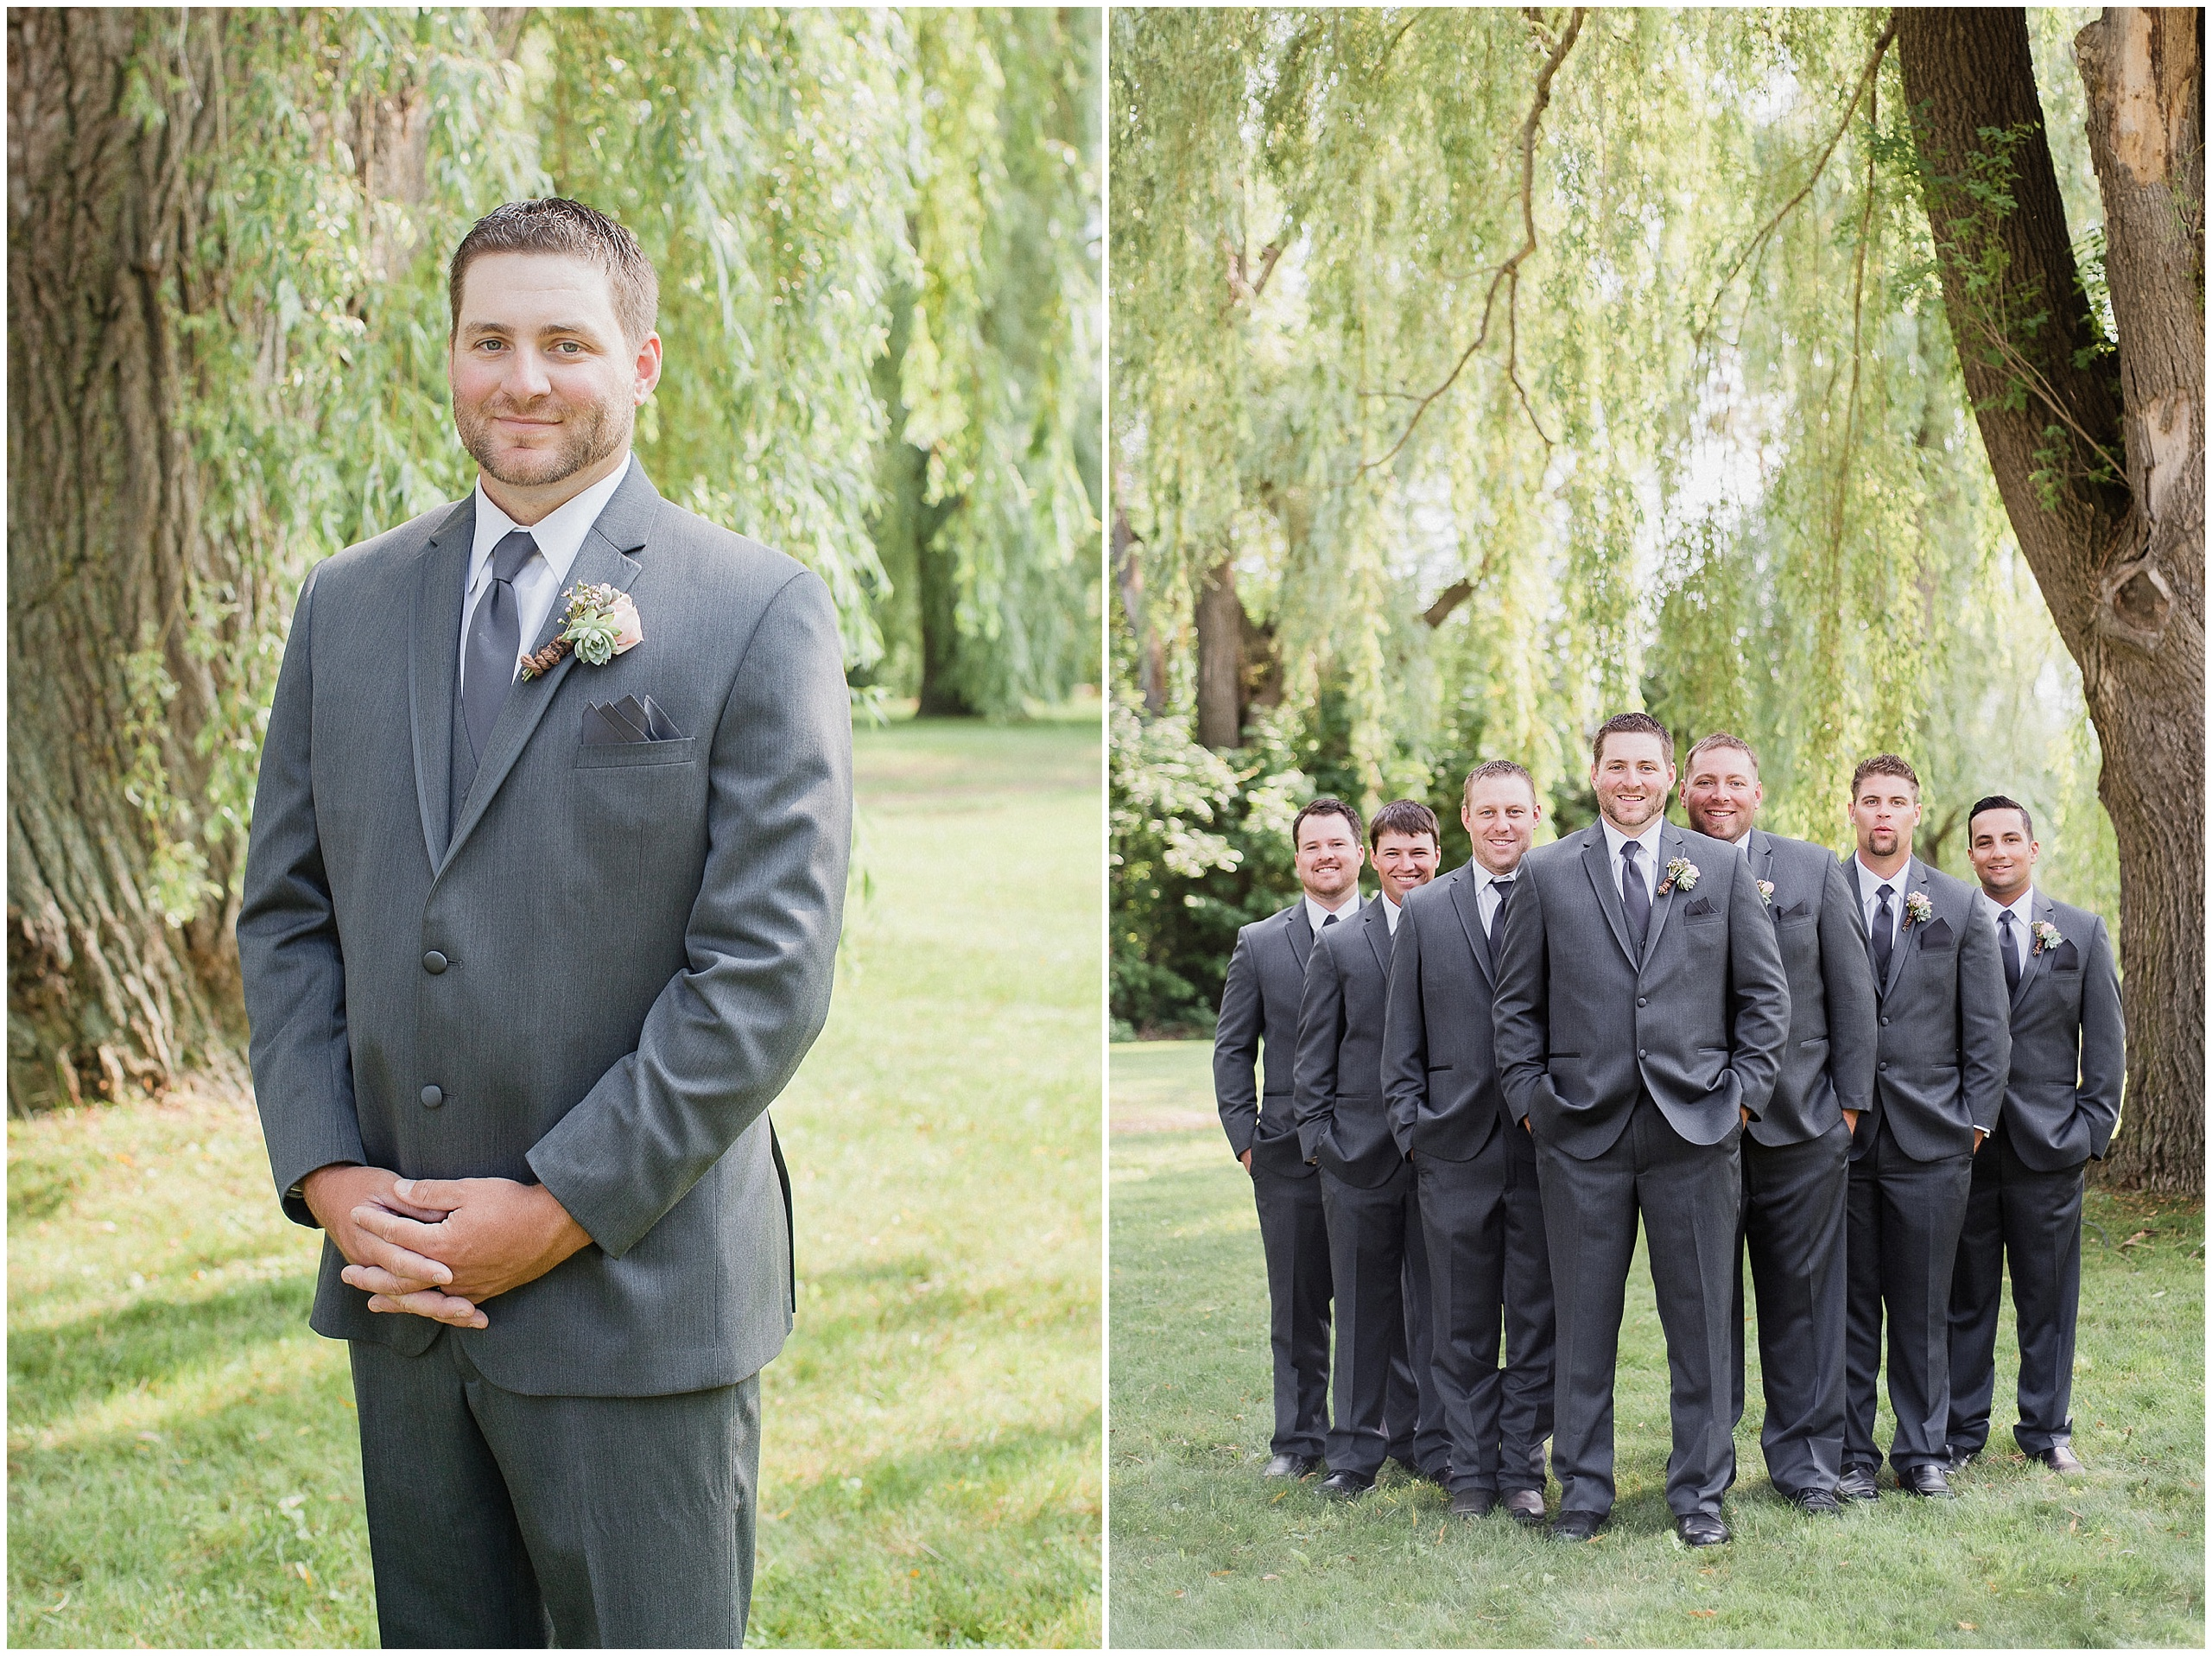 Groomsmen at a Bear Estate wedding, photographed by Jenn Kavanagh Photography